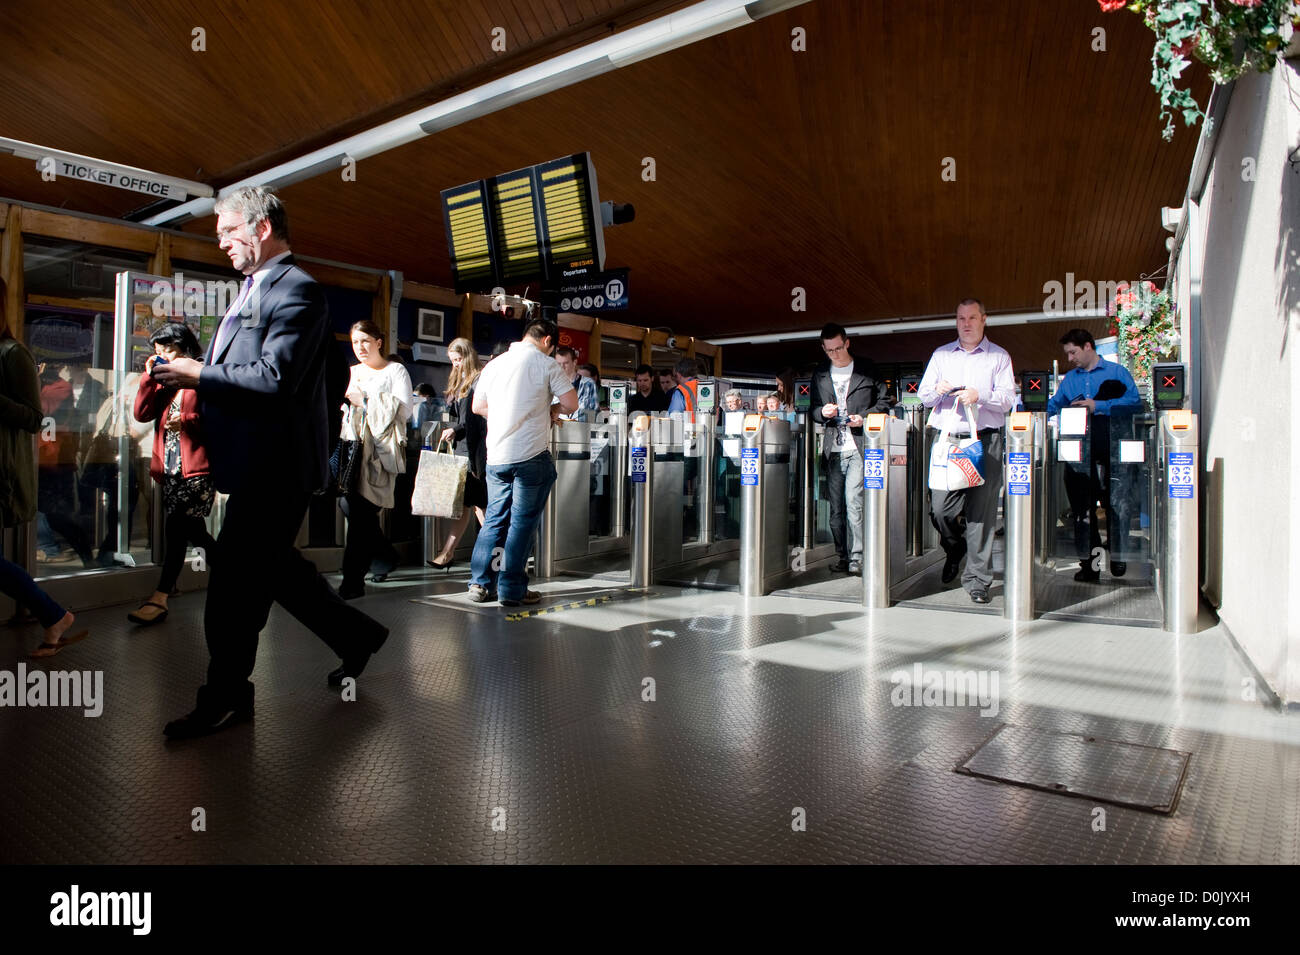 Manchester commuters arrive at Oxford Road railway station. - Stock Image